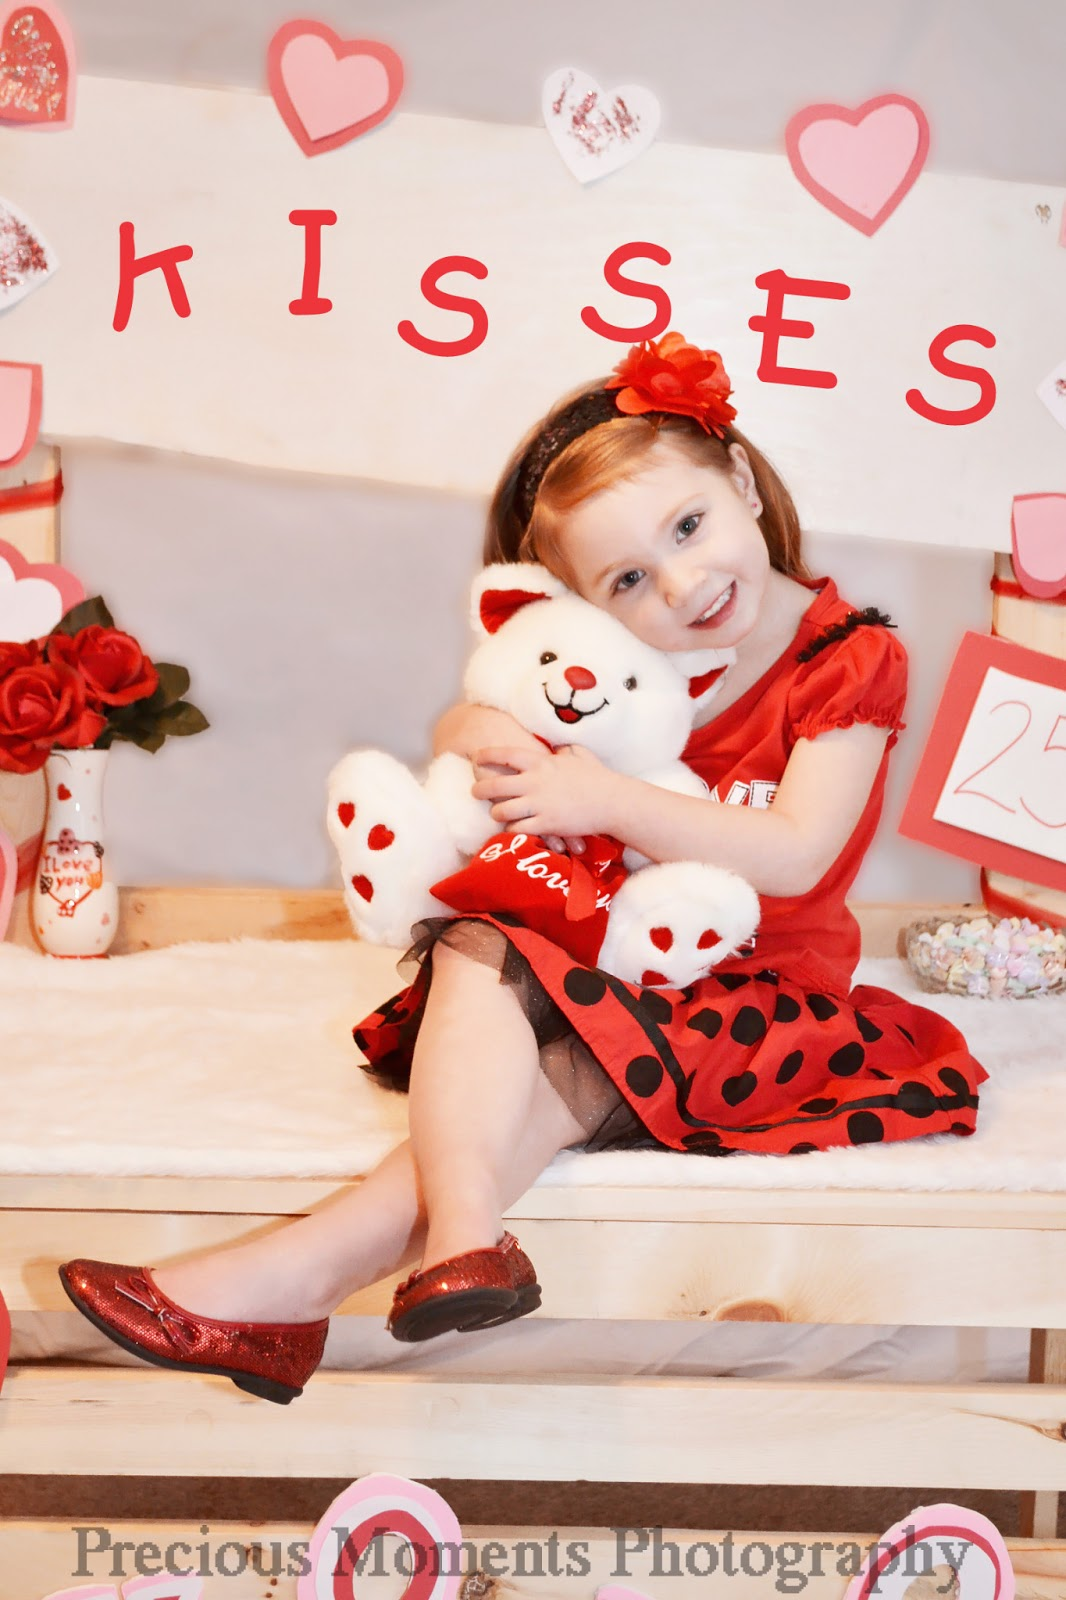 Precious moments photography valentine s day ad